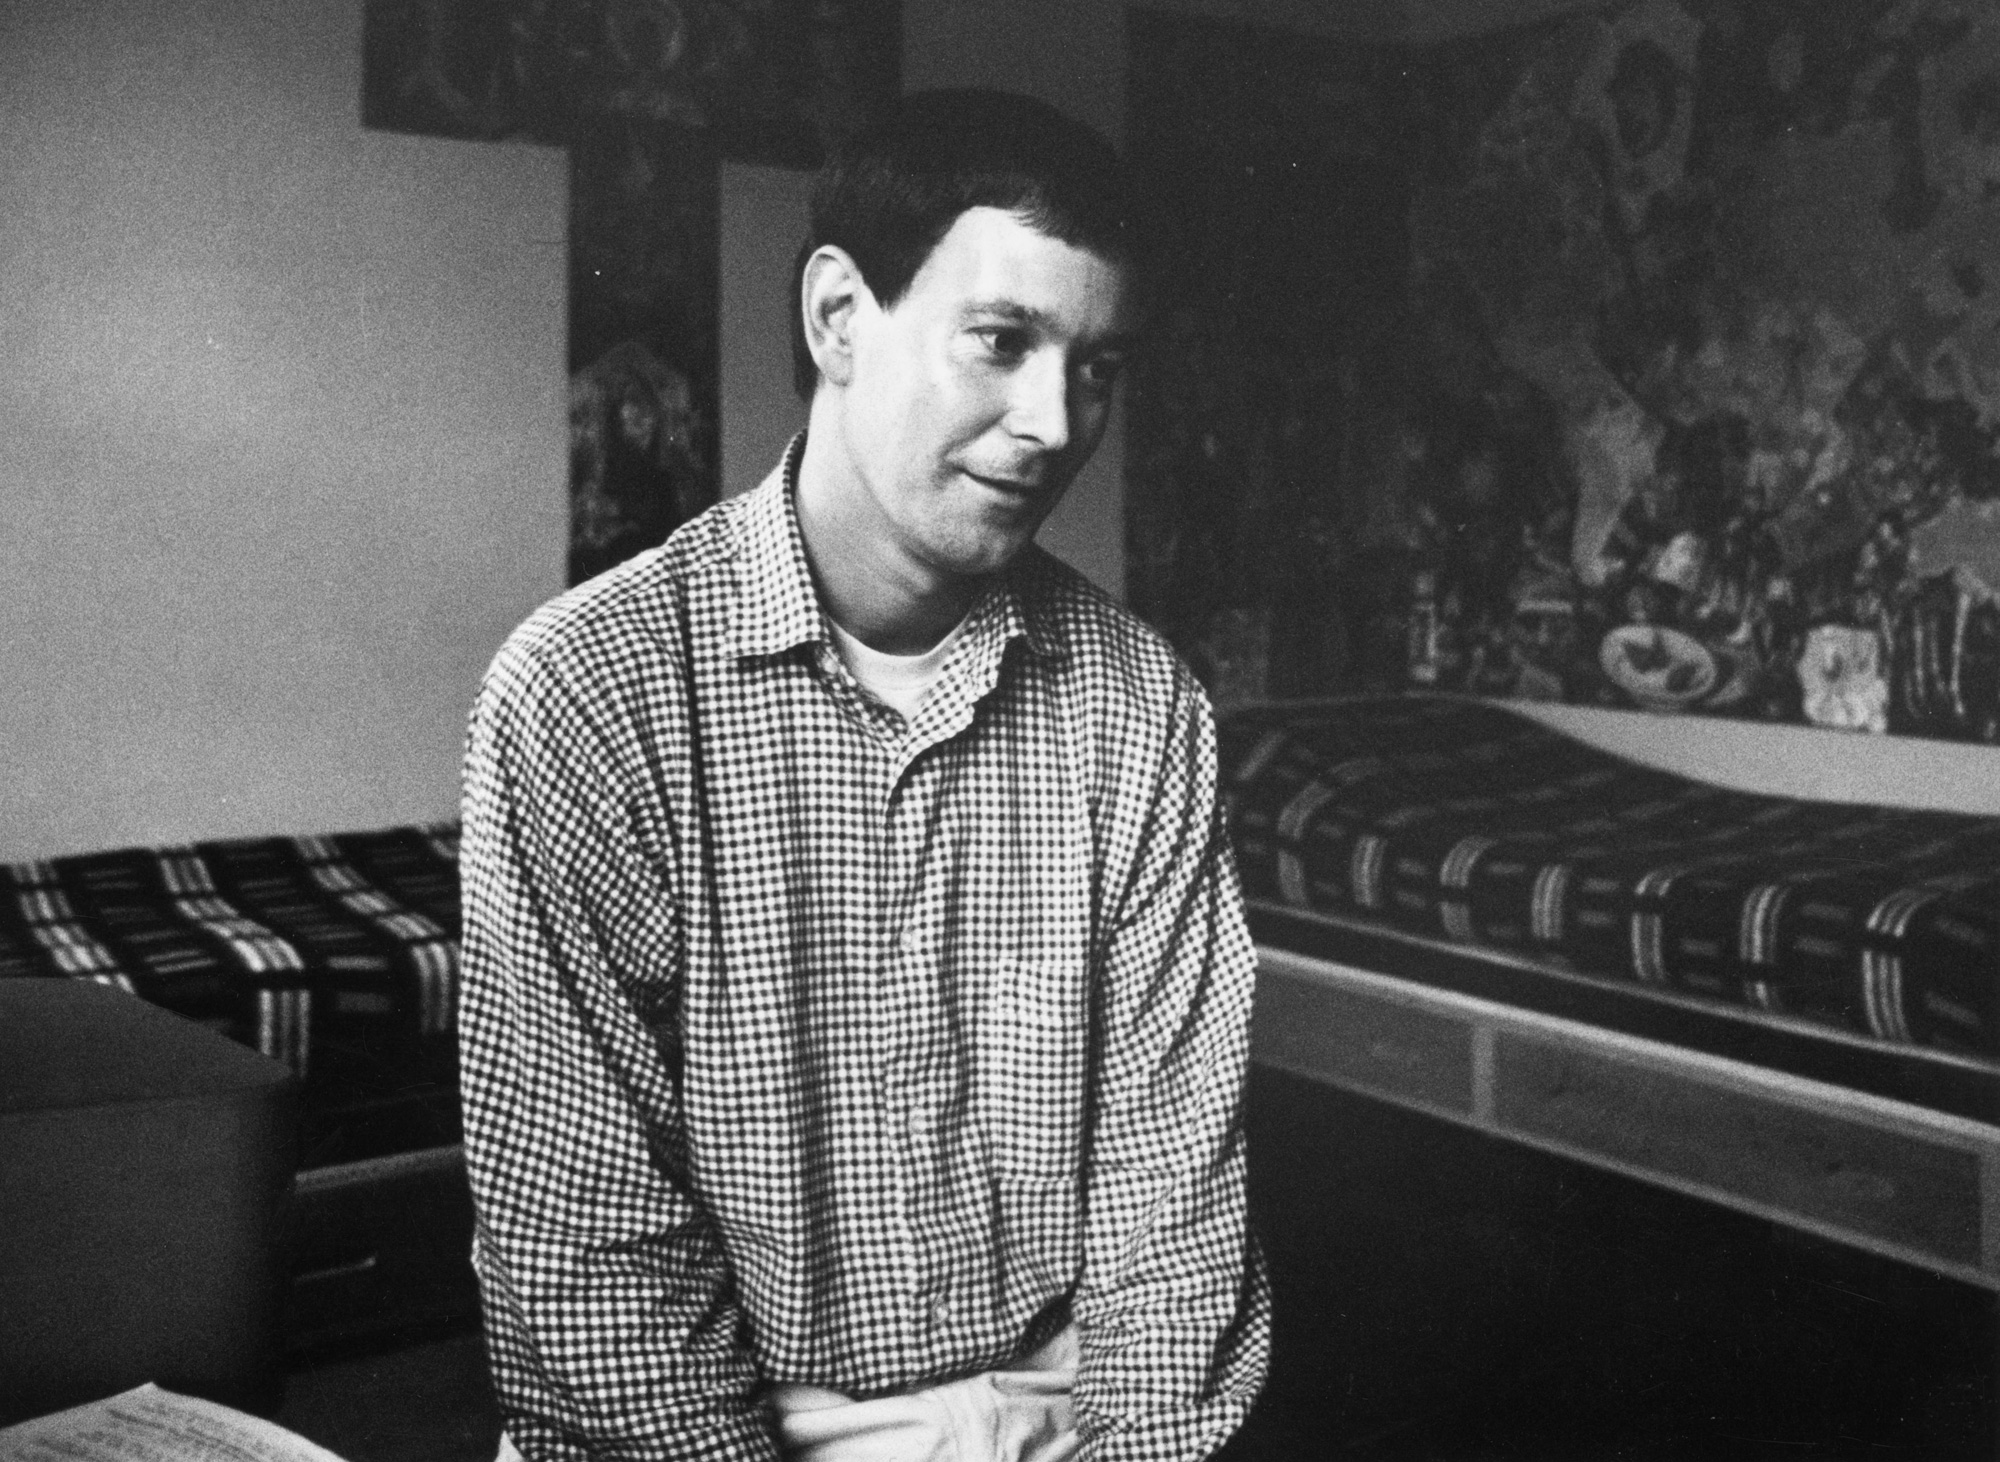 October 1966: British playwright Joe Orton at home in Islington, London. (Photo by Harry Thompson/Evening Standard/Getty Images)